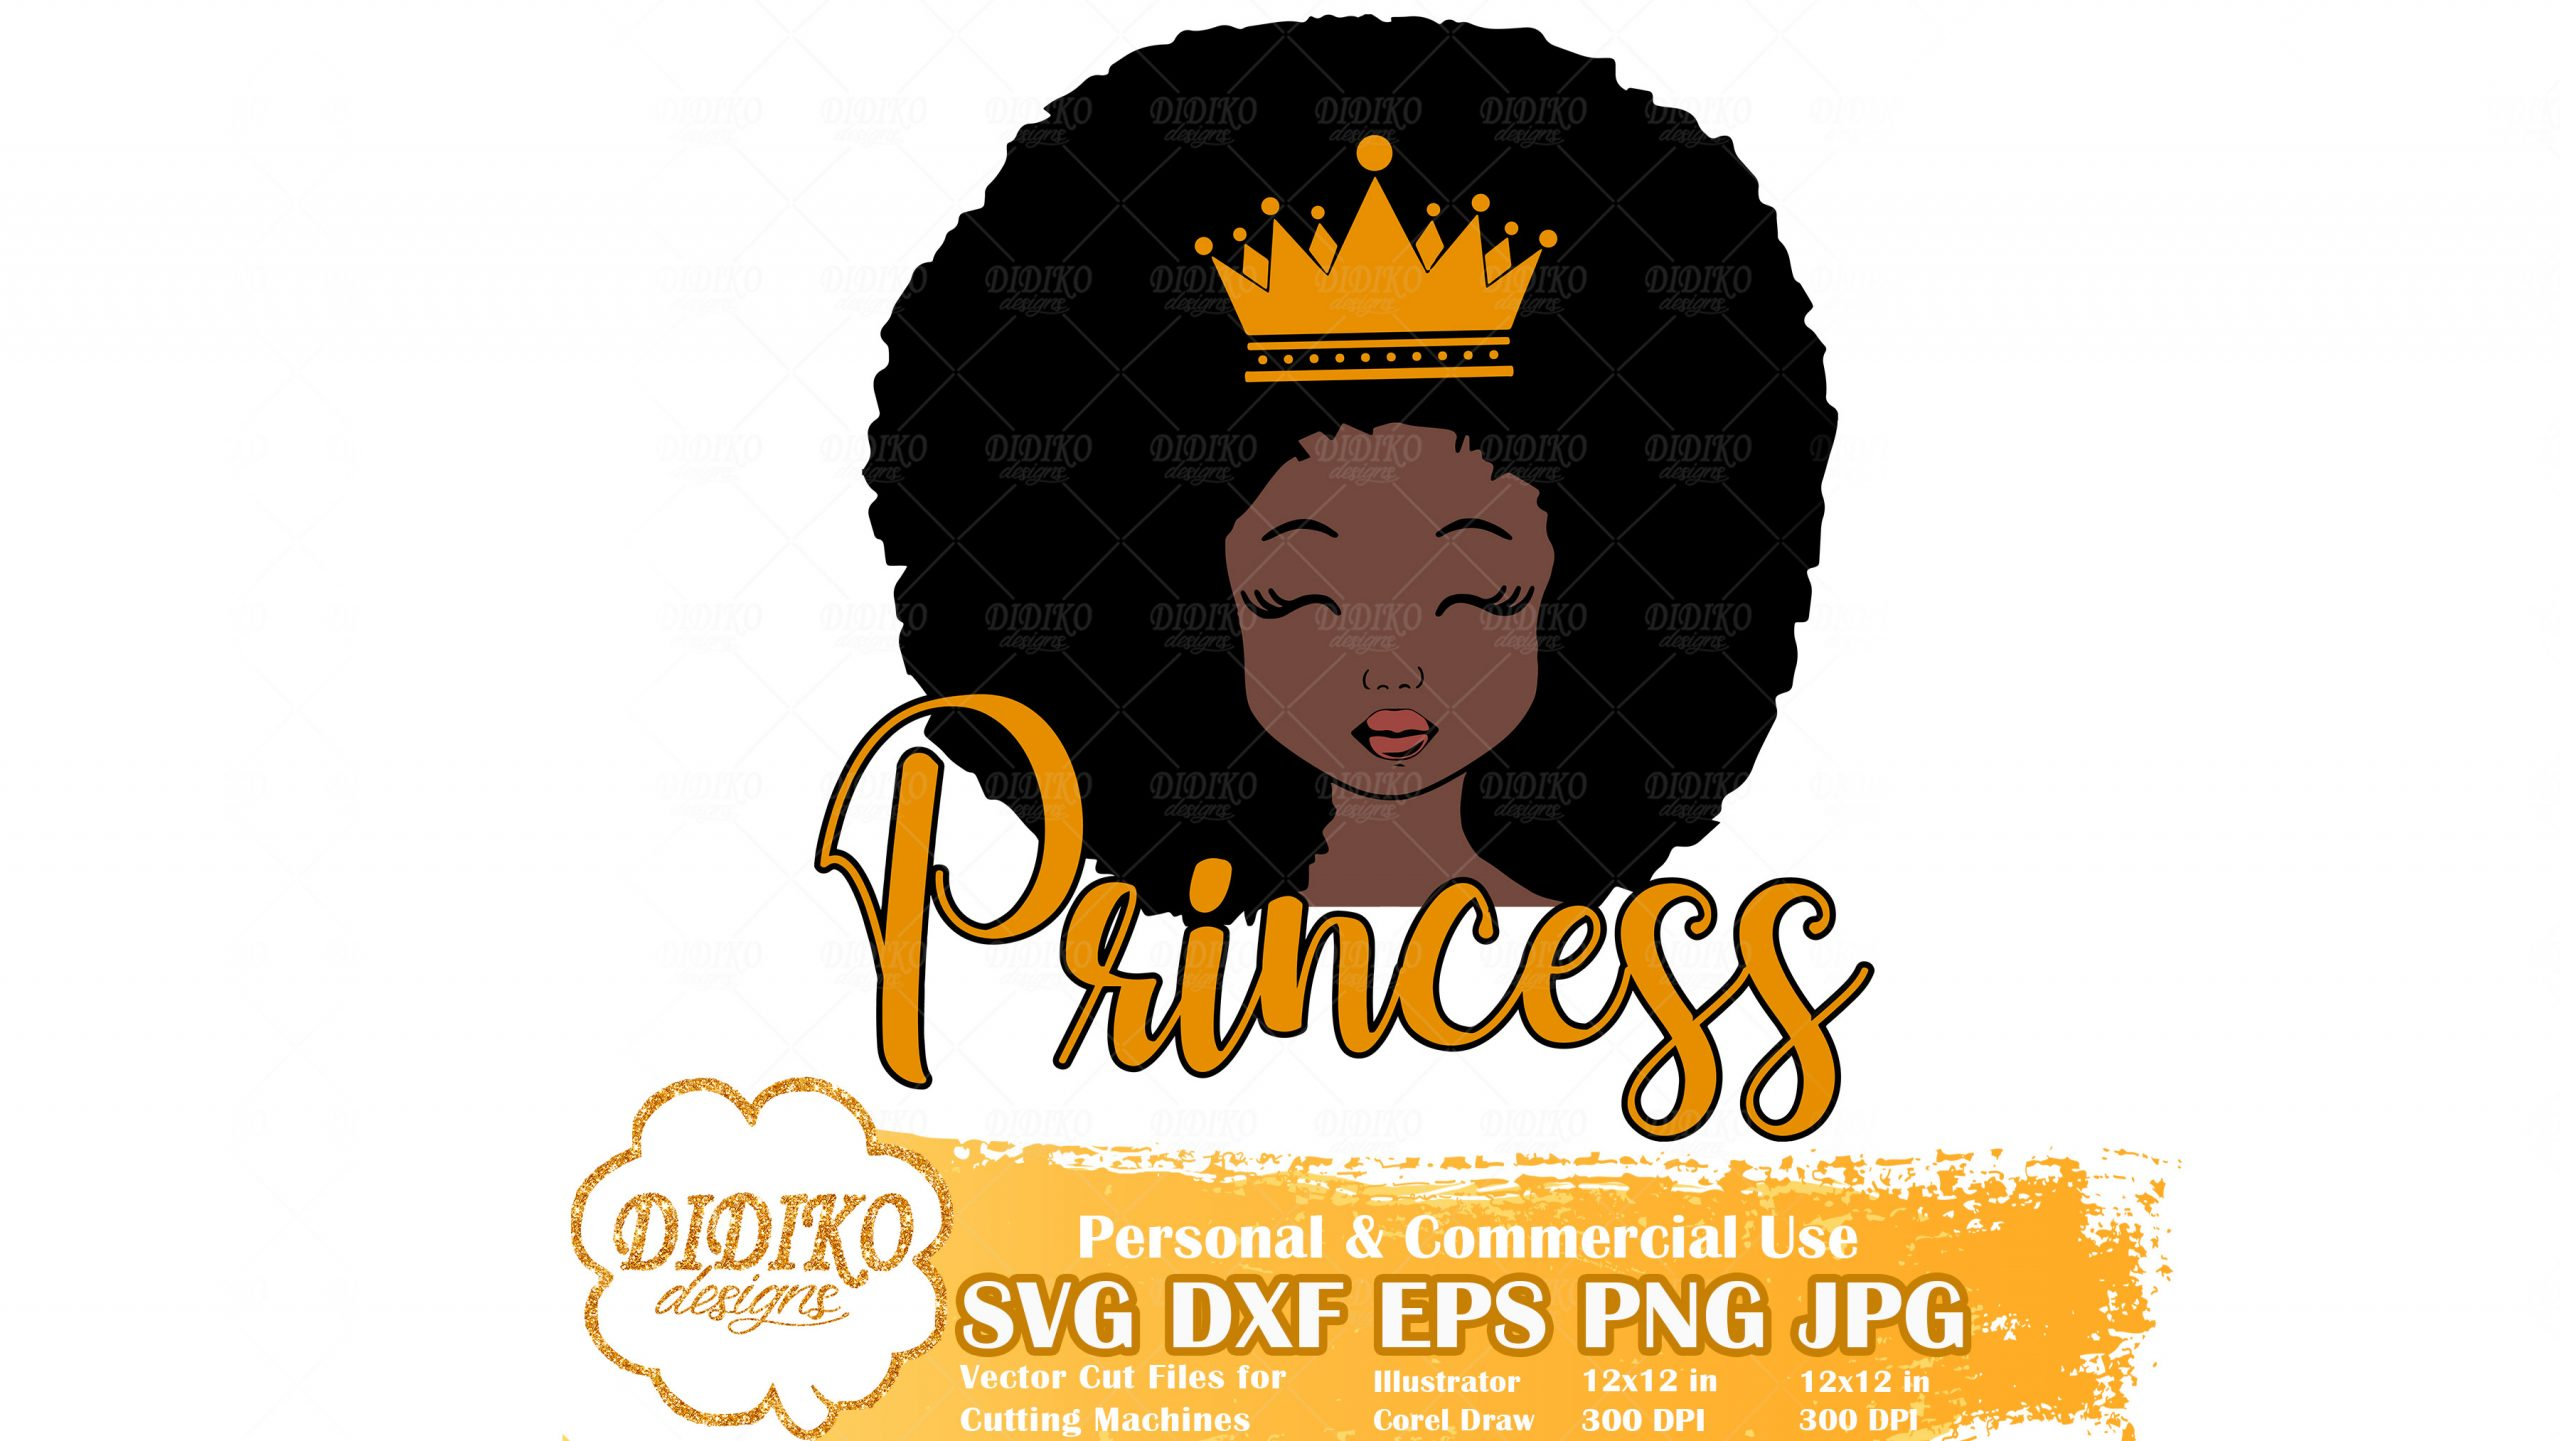 Black Girl Princess SVG